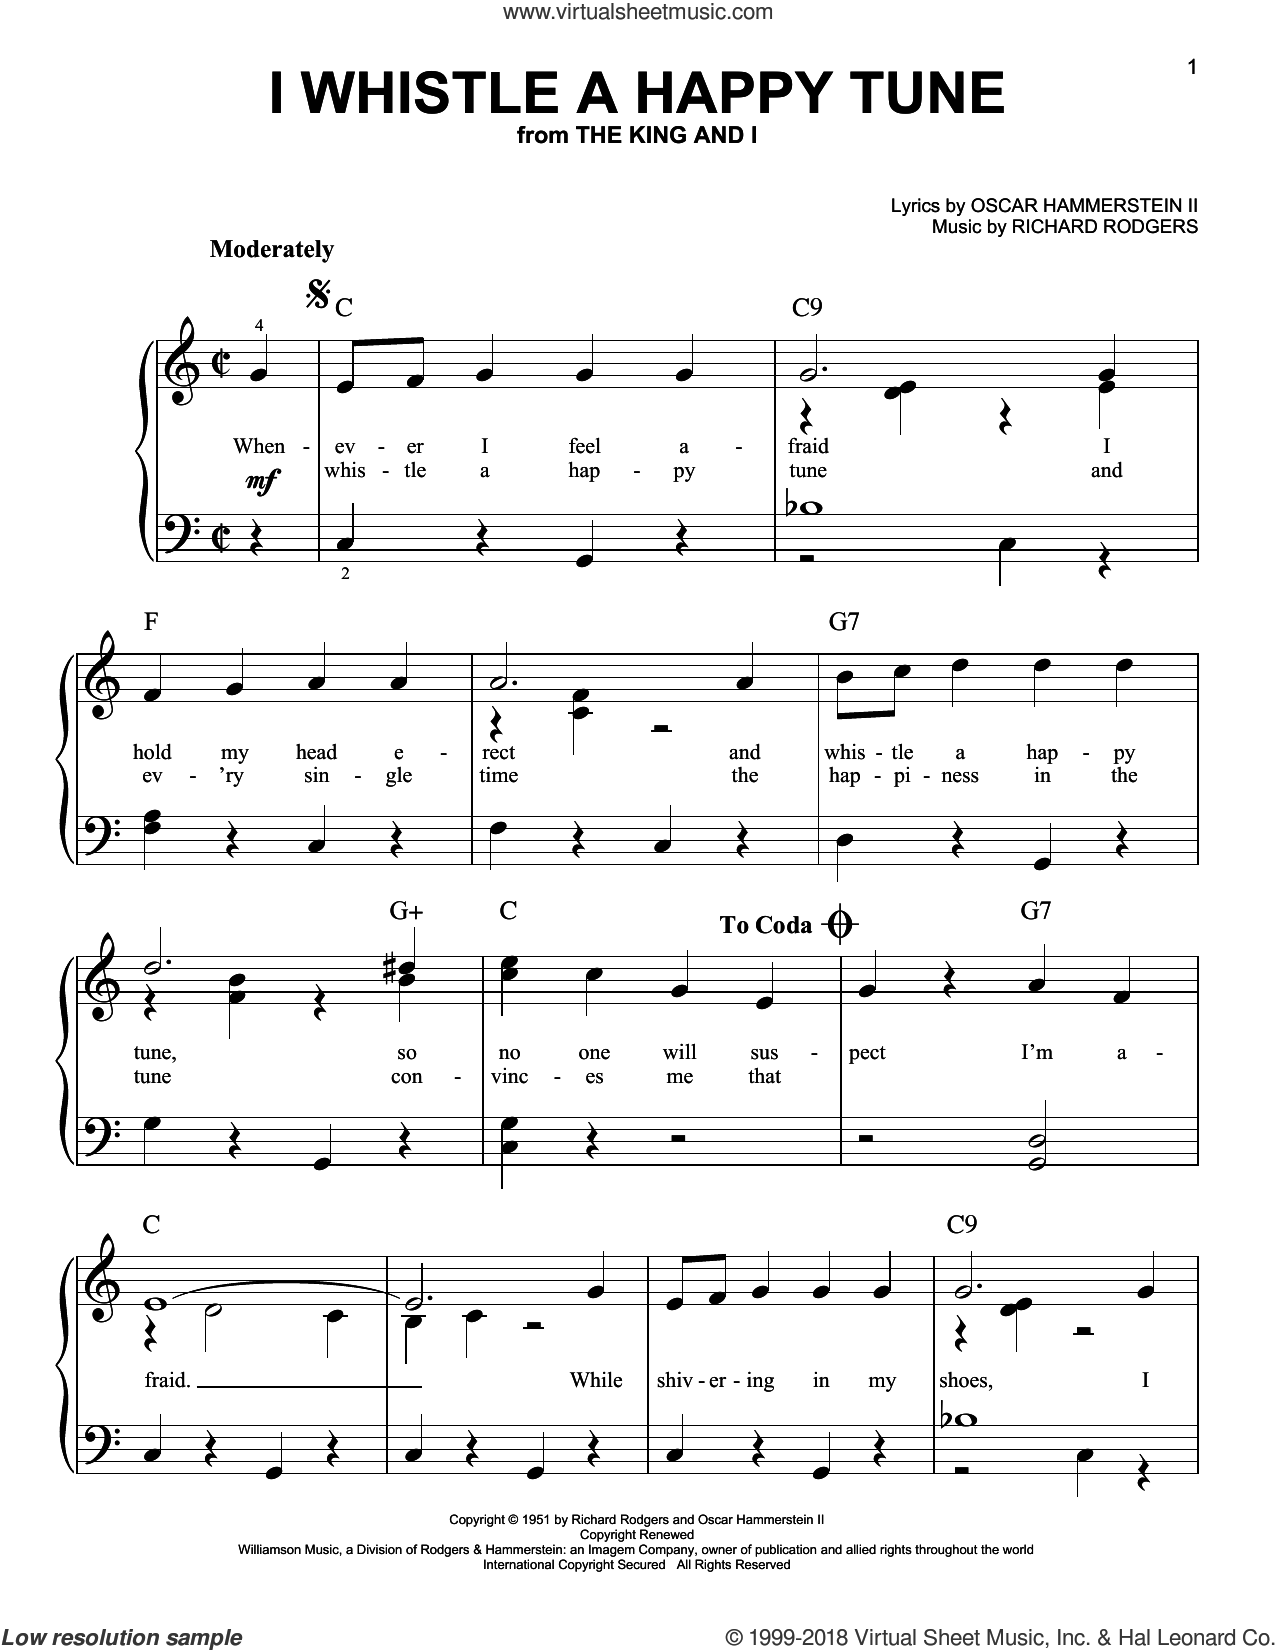 I Whistle A Happy Tune sheet music for piano solo by Rodgers & Hammerstein, Oscar II Hammerstein and Richard Rodgers, beginner skill level